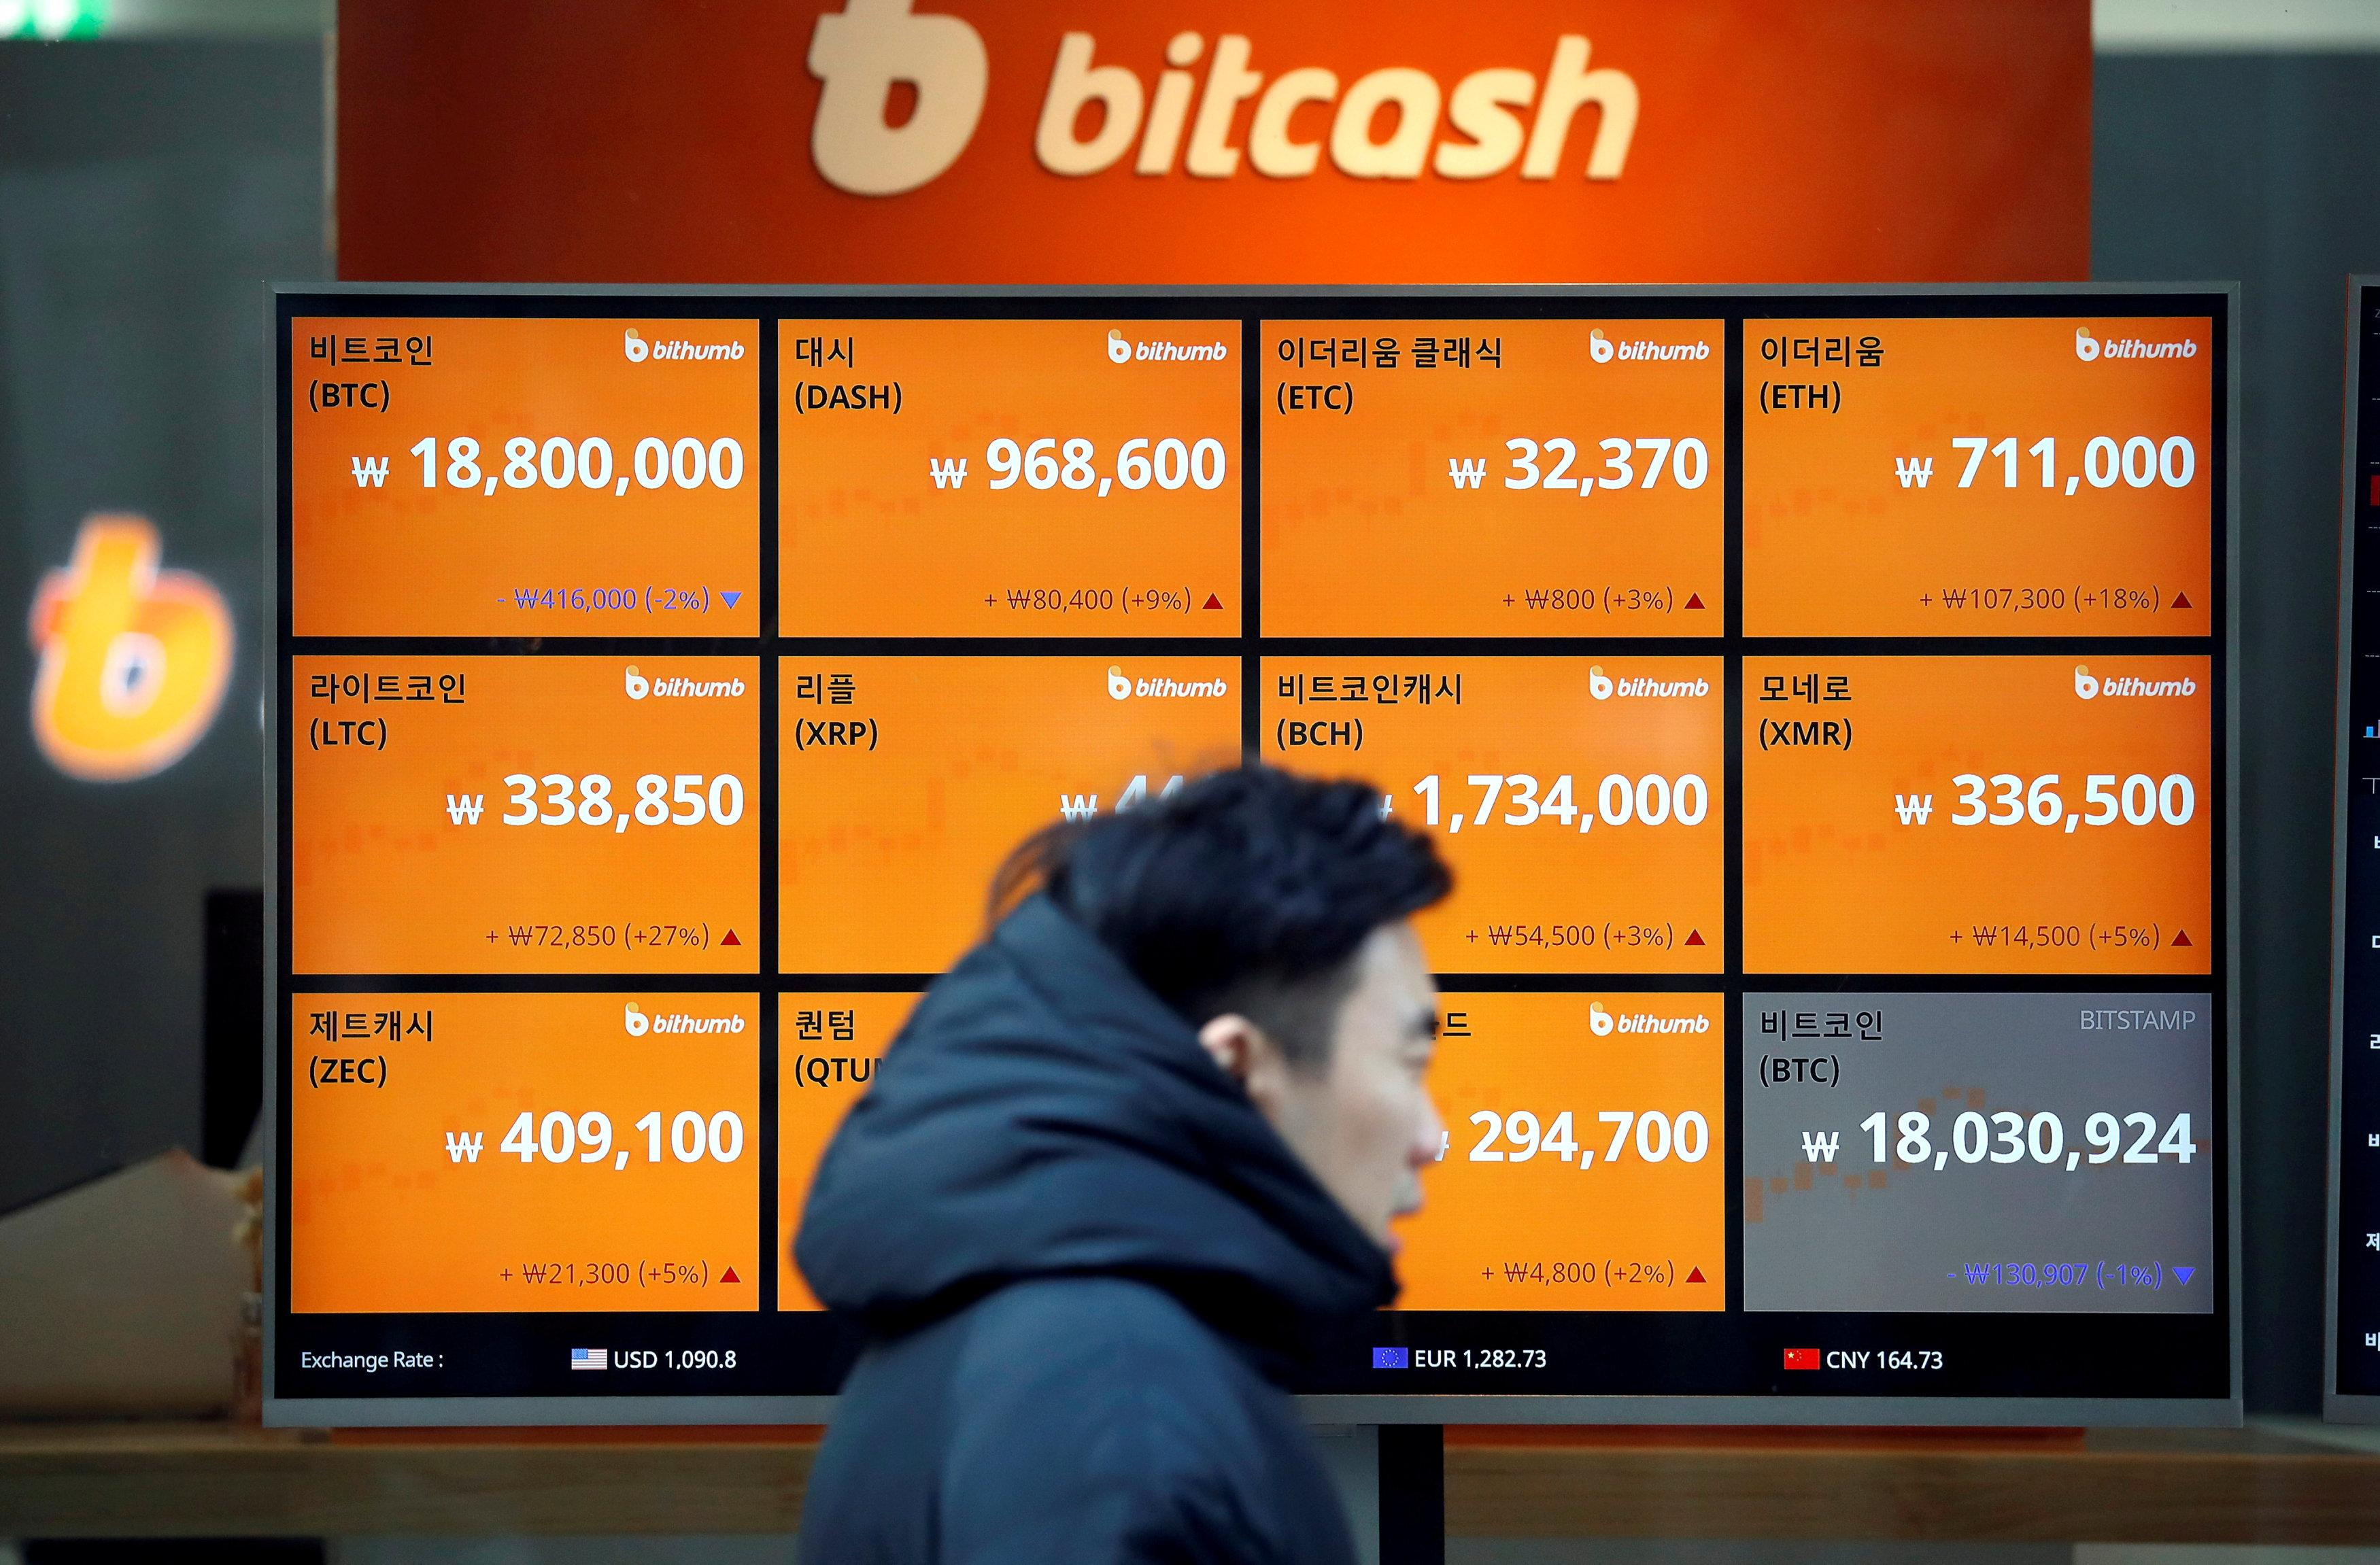 A man walks past an electric board showing exchange rates of various cryptocurrencies including Bitcoin (top L) at a cryptocurrencies exchange in Seoul, South Korea December 13, 2017.  Kim Hong-Ji